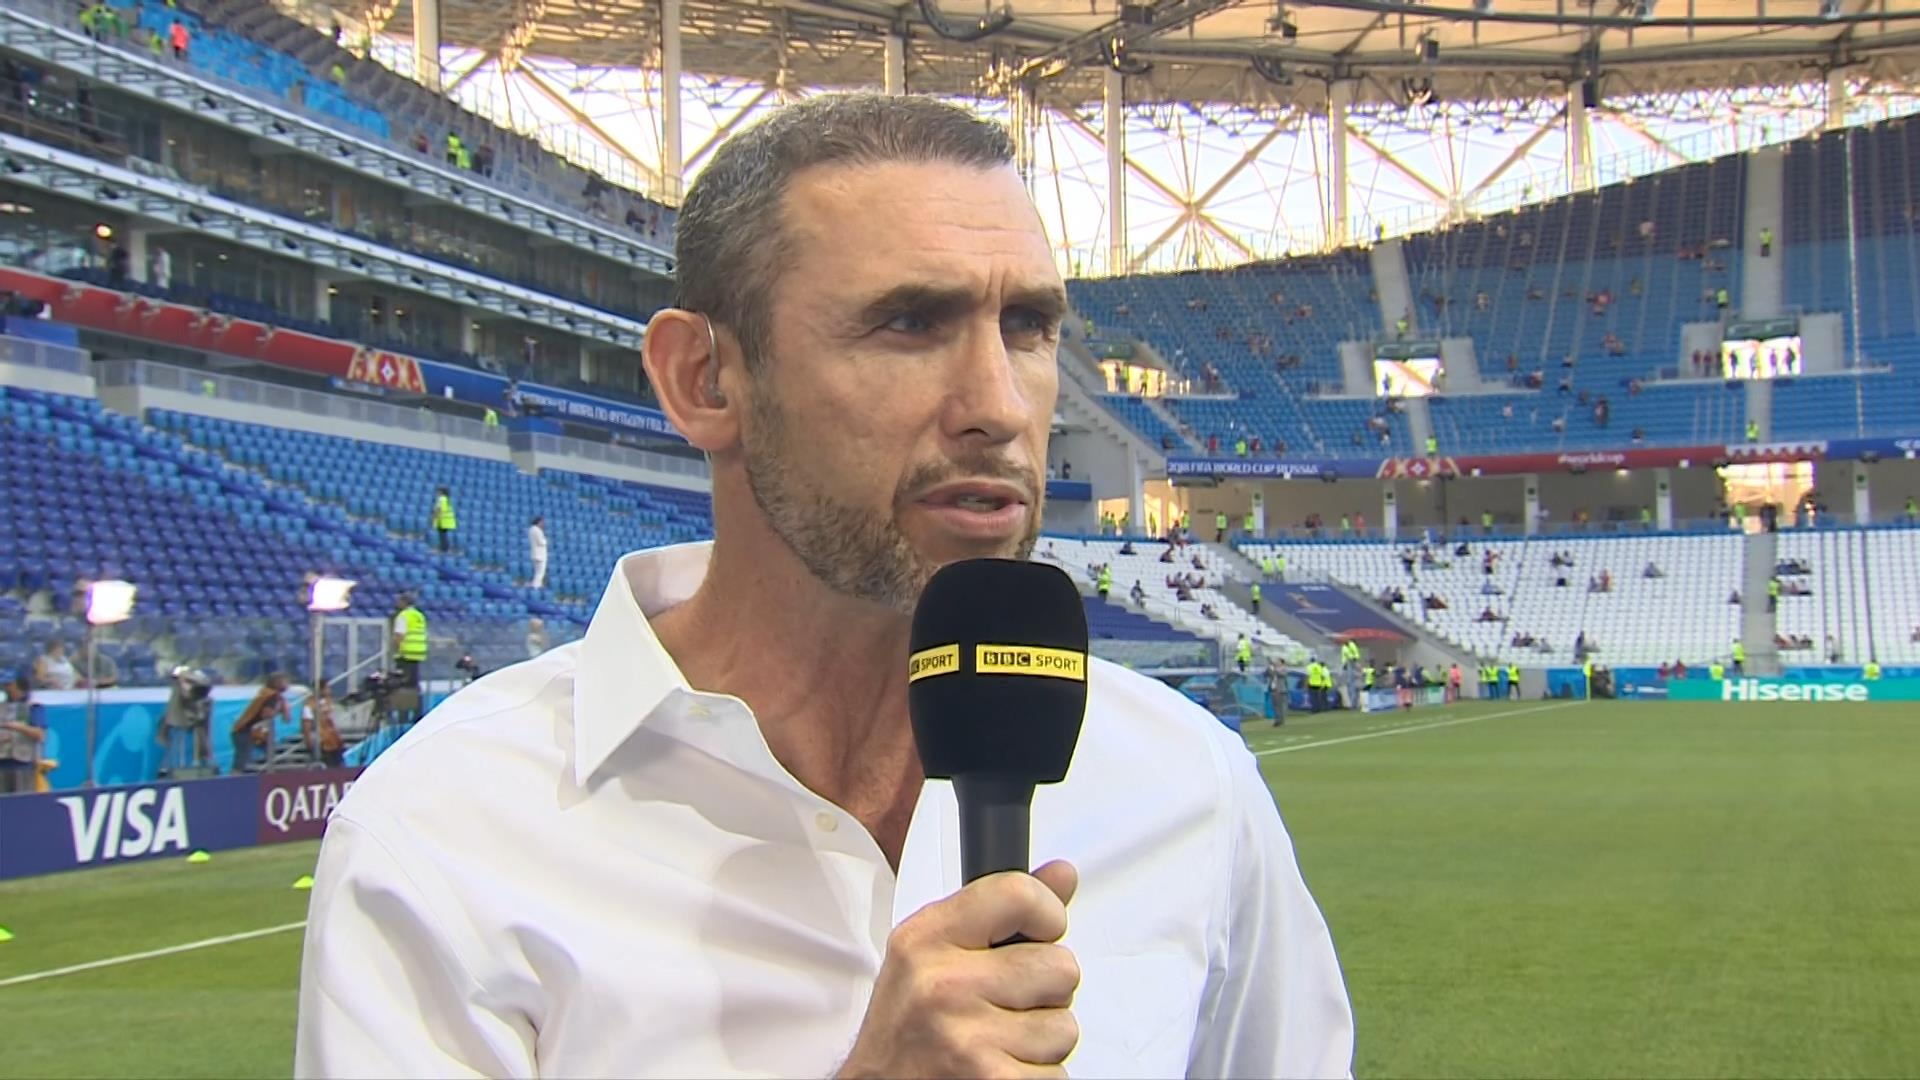 Martin Keown - BBC World Cup 2018 (2)